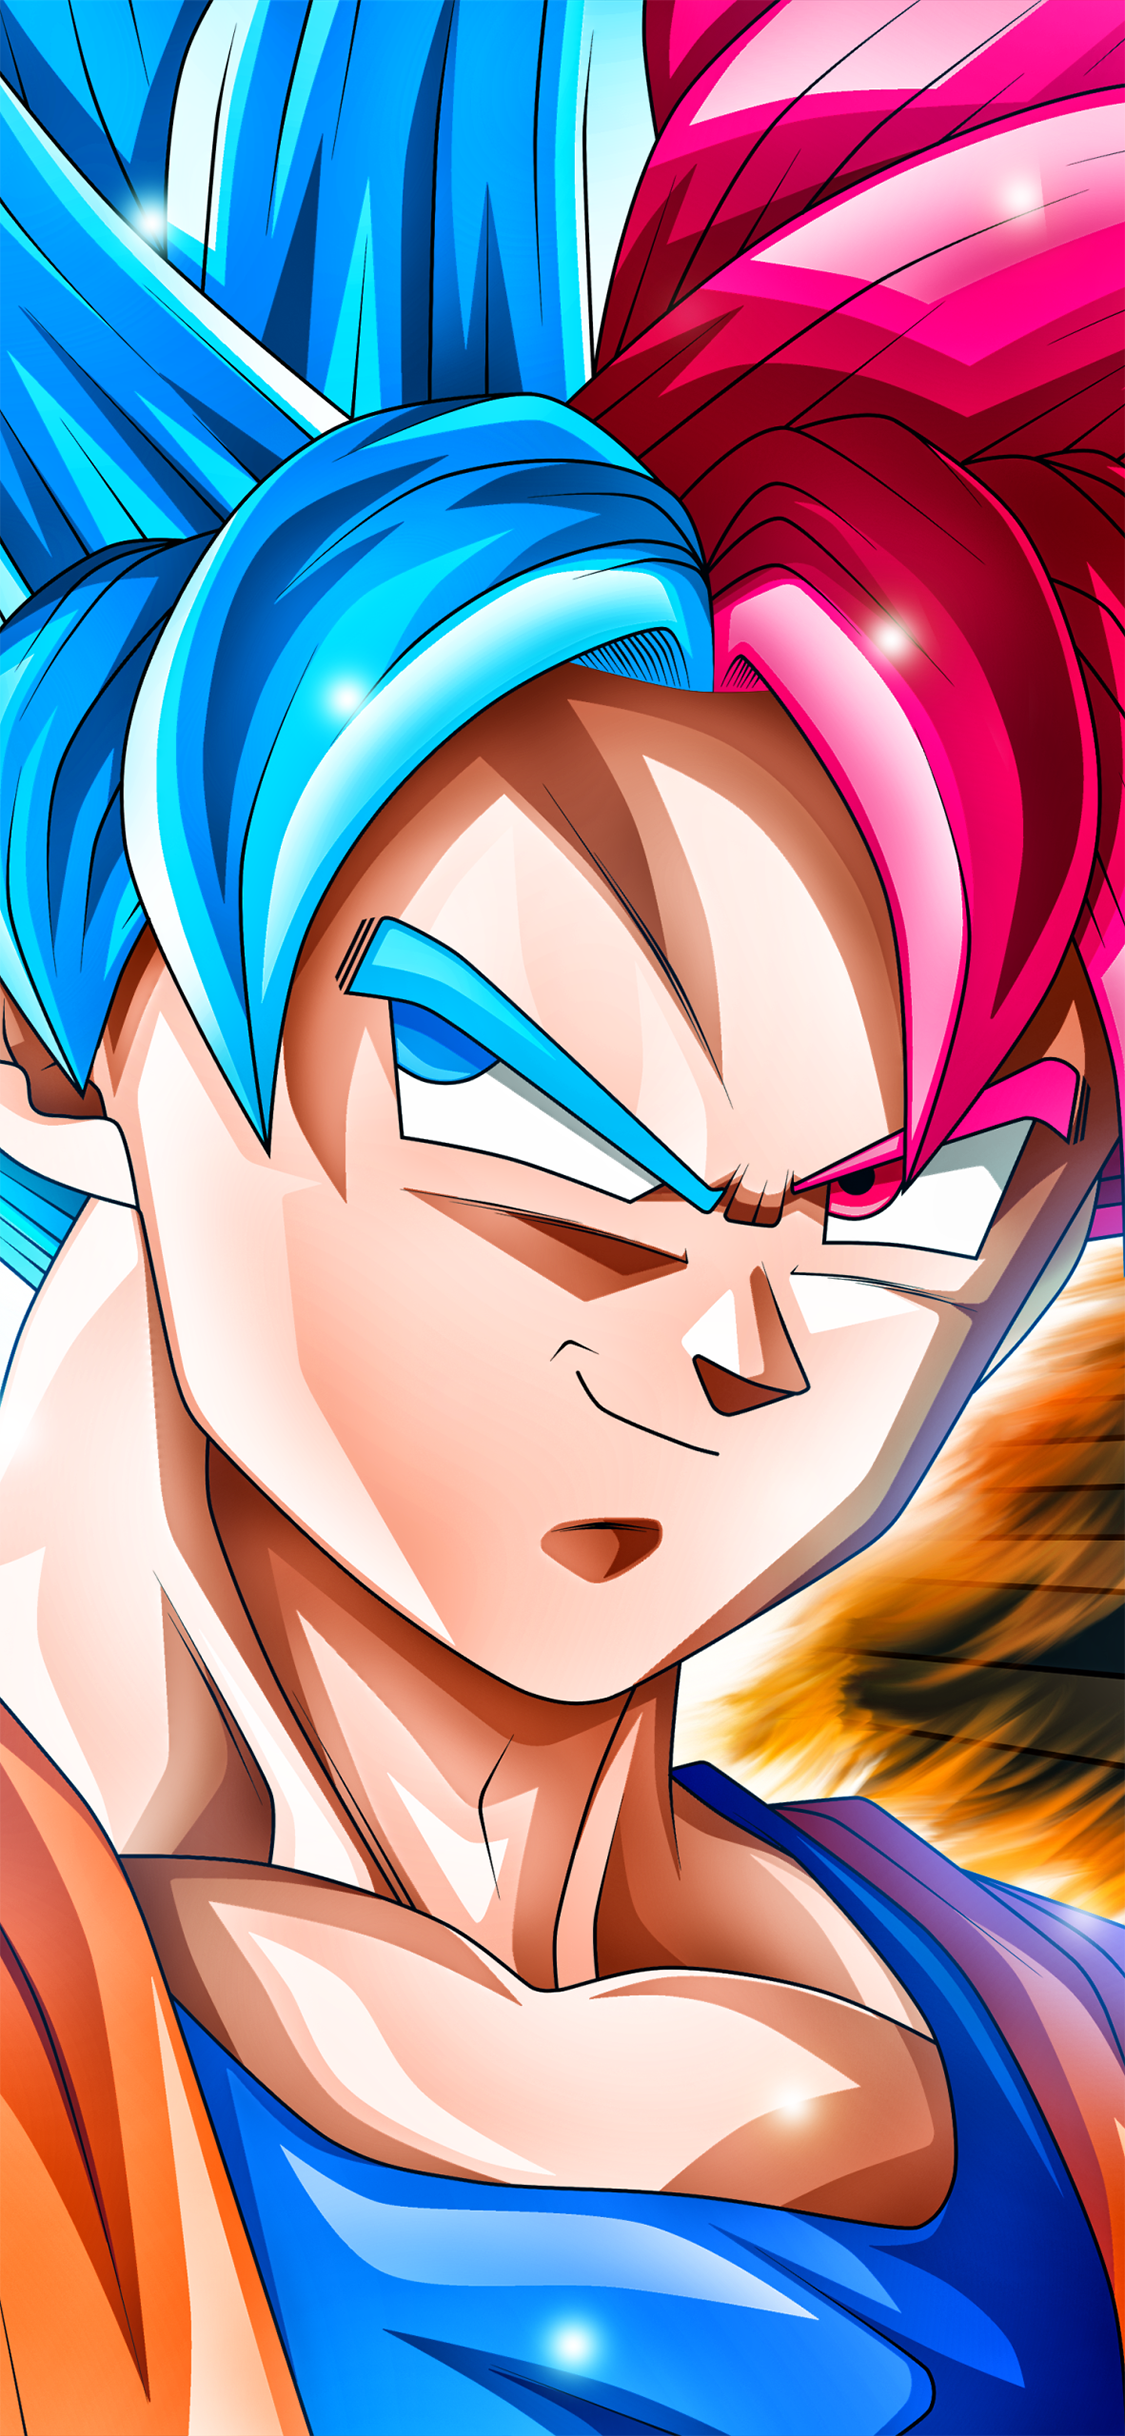 Dragon Bead Animation Realizes Empty Colour Wallpapers For Iphone X Iphone Xs A Anime Dragon Ball Super Dragon Ball Wallpaper Iphone Dragon Ball Super Artwork